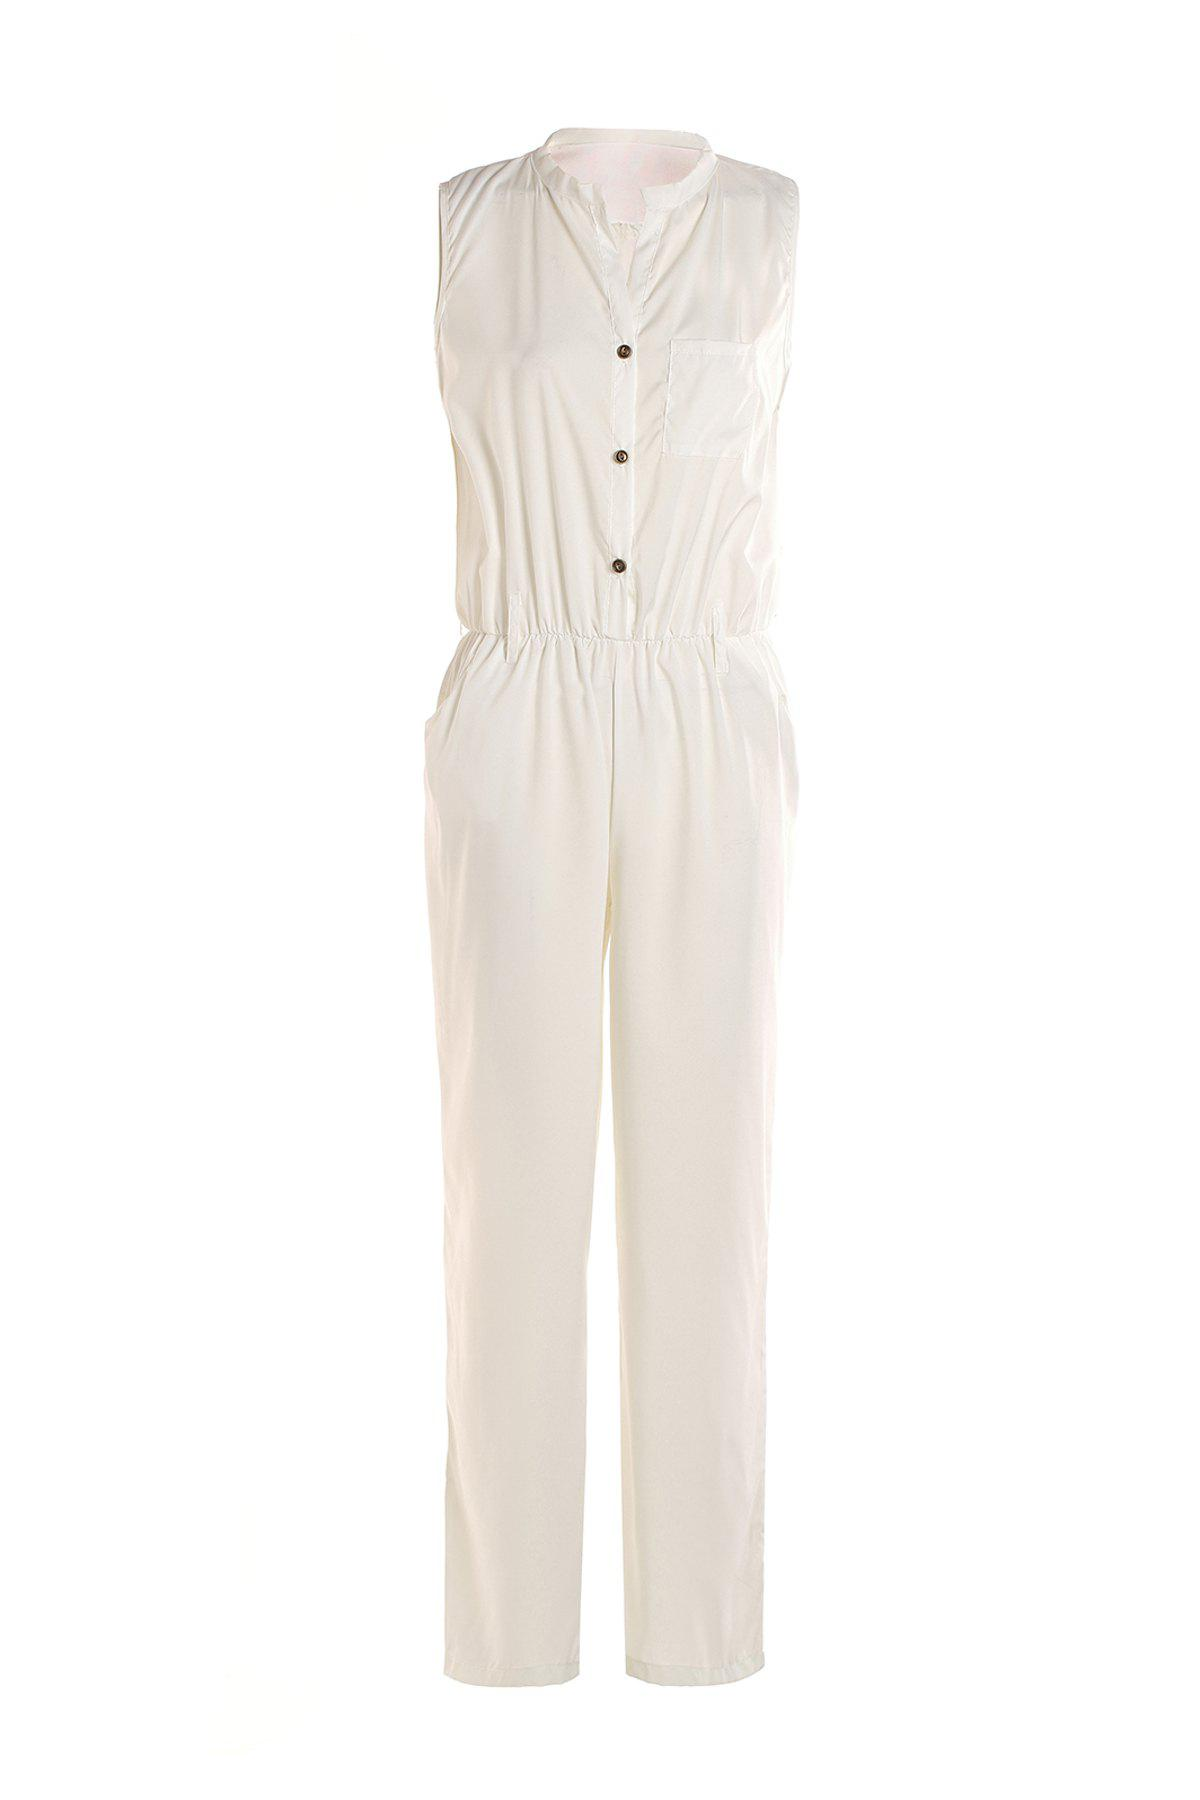 Fashion Stylish Stand-Up Collar Sleeveless Pure Color Women's Jumpsuit